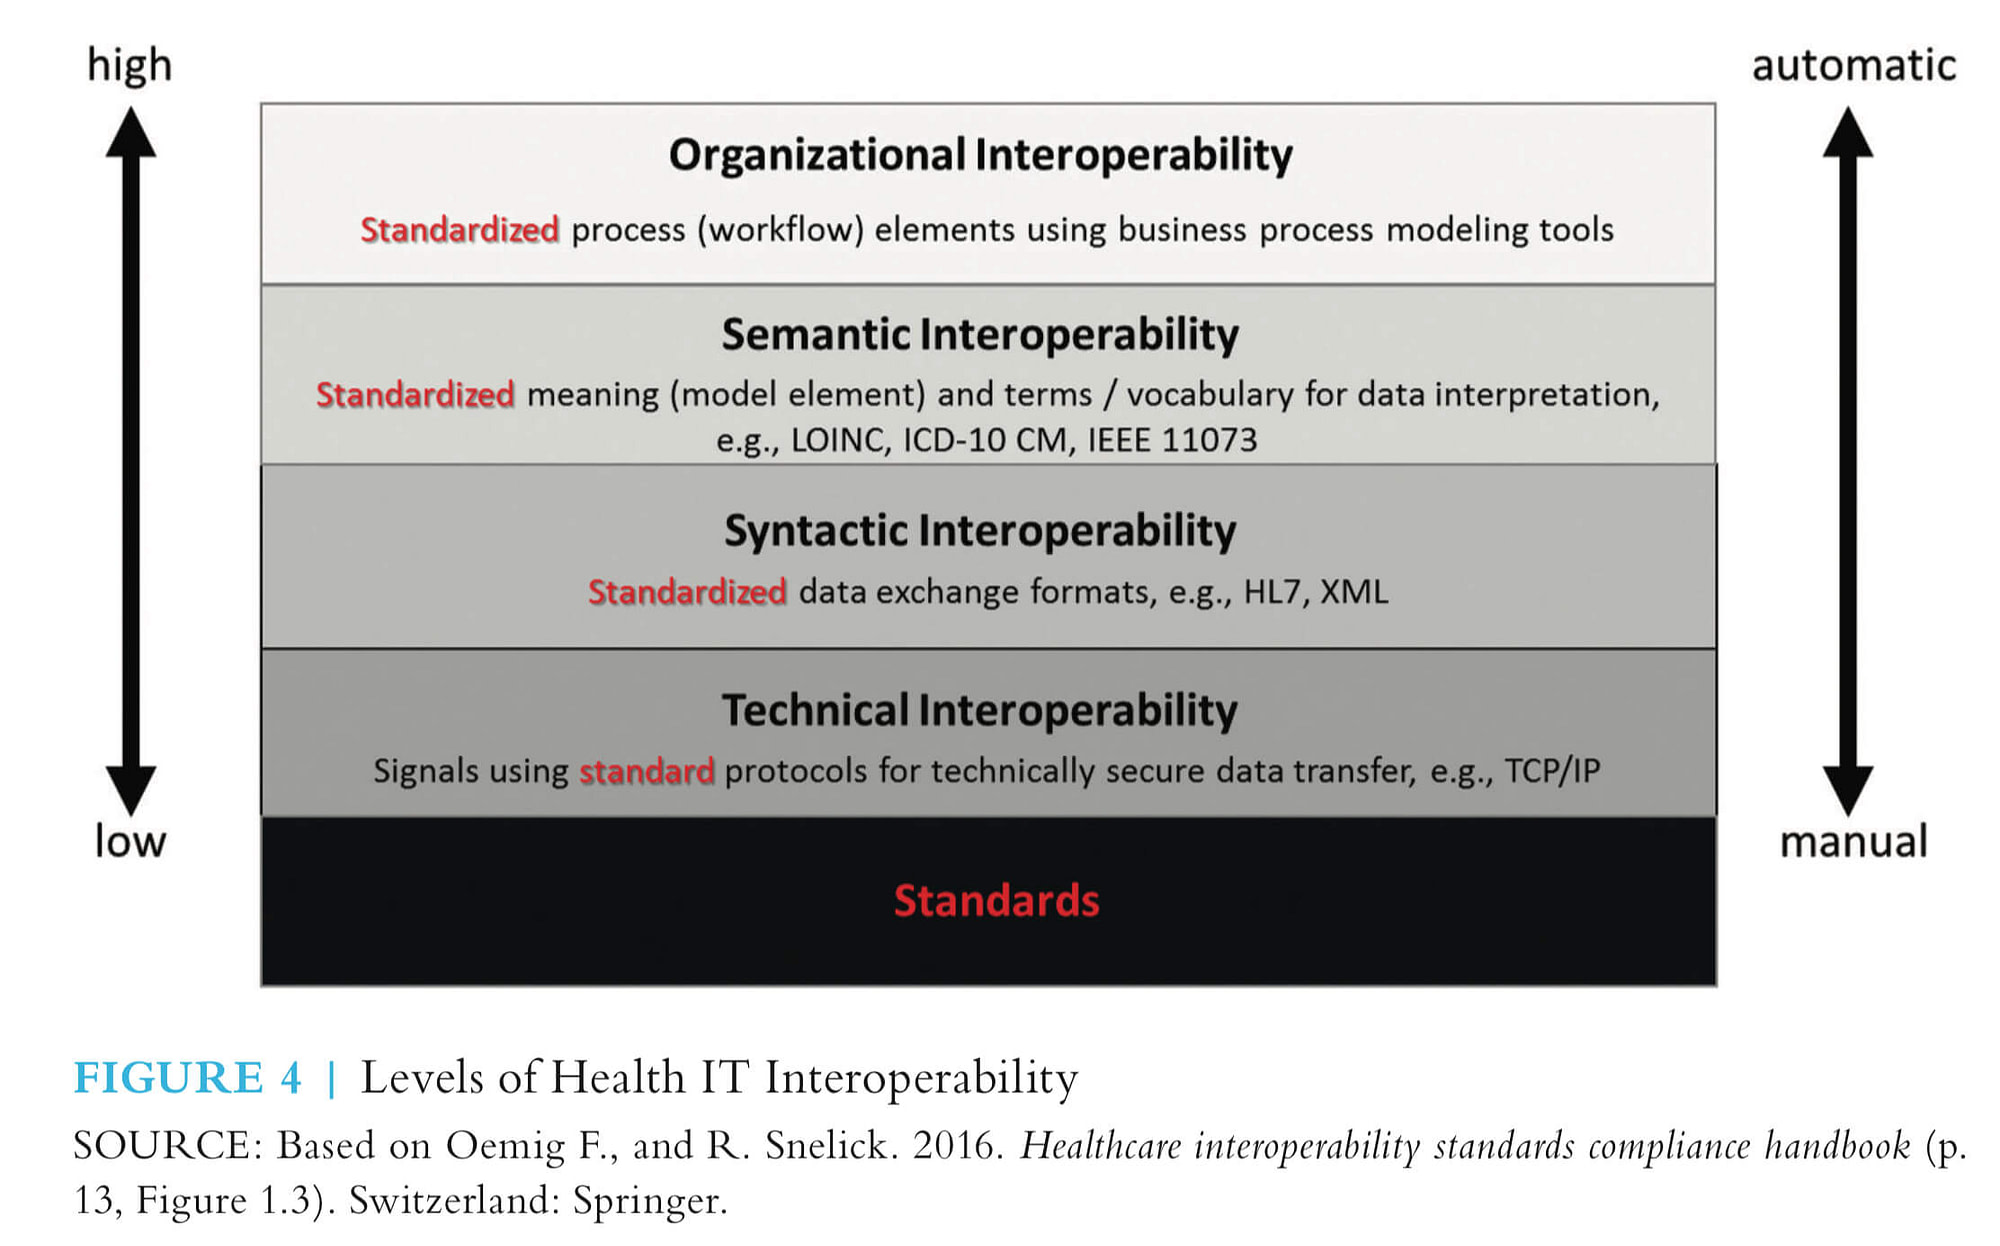 Levels of Health IT Interoperability